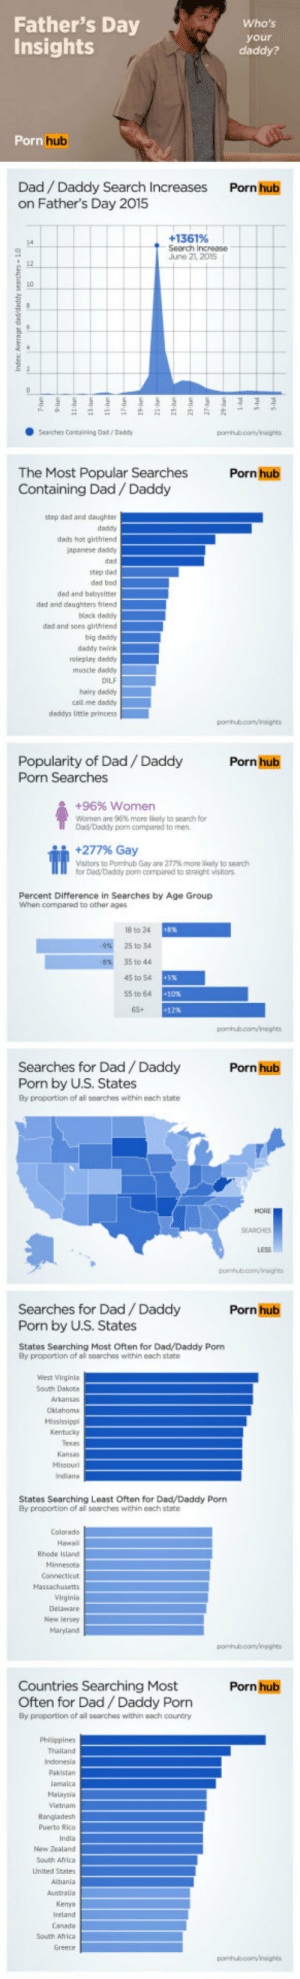 Africa, Dad, and Fathers Day: Father's Day  Insights  2  your  hub  Dad/ Daddy Search Increases  on Father's Day 2015  Porn hub  +1361%  Search Increase  June 21 2015  Searches Containing Dad/ Daddy  The Most Popular Searches  Containing Dad/Daddy  Porn hub  step dad and daughter  dads hot girlfriend  apanese daddy  step dad  ded and bebysitter  dad and daughters friend  black deddy  dad and sons girufrliend  big daddy  daddy twink  roleplay daddy  muscle deddy  hairy deddy  call me daddy  Popularity of Dad/Daddy  Porn Searches  Porn hub  +96% women  women are 96% more likely to search for  Dad/Daddy porn compared to men  Visitors to Pornhub Gay are 277% more laty to search  for Dad Daddy pom compared to straight vistors  Percent Difference in Searches by Age Group  When compared to other ages  18 to 24  25 to 34  45 to 54  Searches for Dad/Daddy  Porn hub  Porn by U.S. States  By proportion of all searches within eech state  Searches for Dad Daddy  Porn by U.S. States  States Searching Most Often for Dad/Daddy Porn  Porn hub  By proportion of al soarches within each state  West Virginia  South Dakota  States Searching Least Öften for Dad/Daddy Porn  By proportion of al searches within each state  Rhode Island  New lersey  Countries Searching Most  Often for Dad/ Daddy Porn  By proportion of all searches within each country  Porn hub  New Zealand  South Africa Pornhub just revealed its site insight about Fathers Day. Guess which country searched Daddy porn the most?